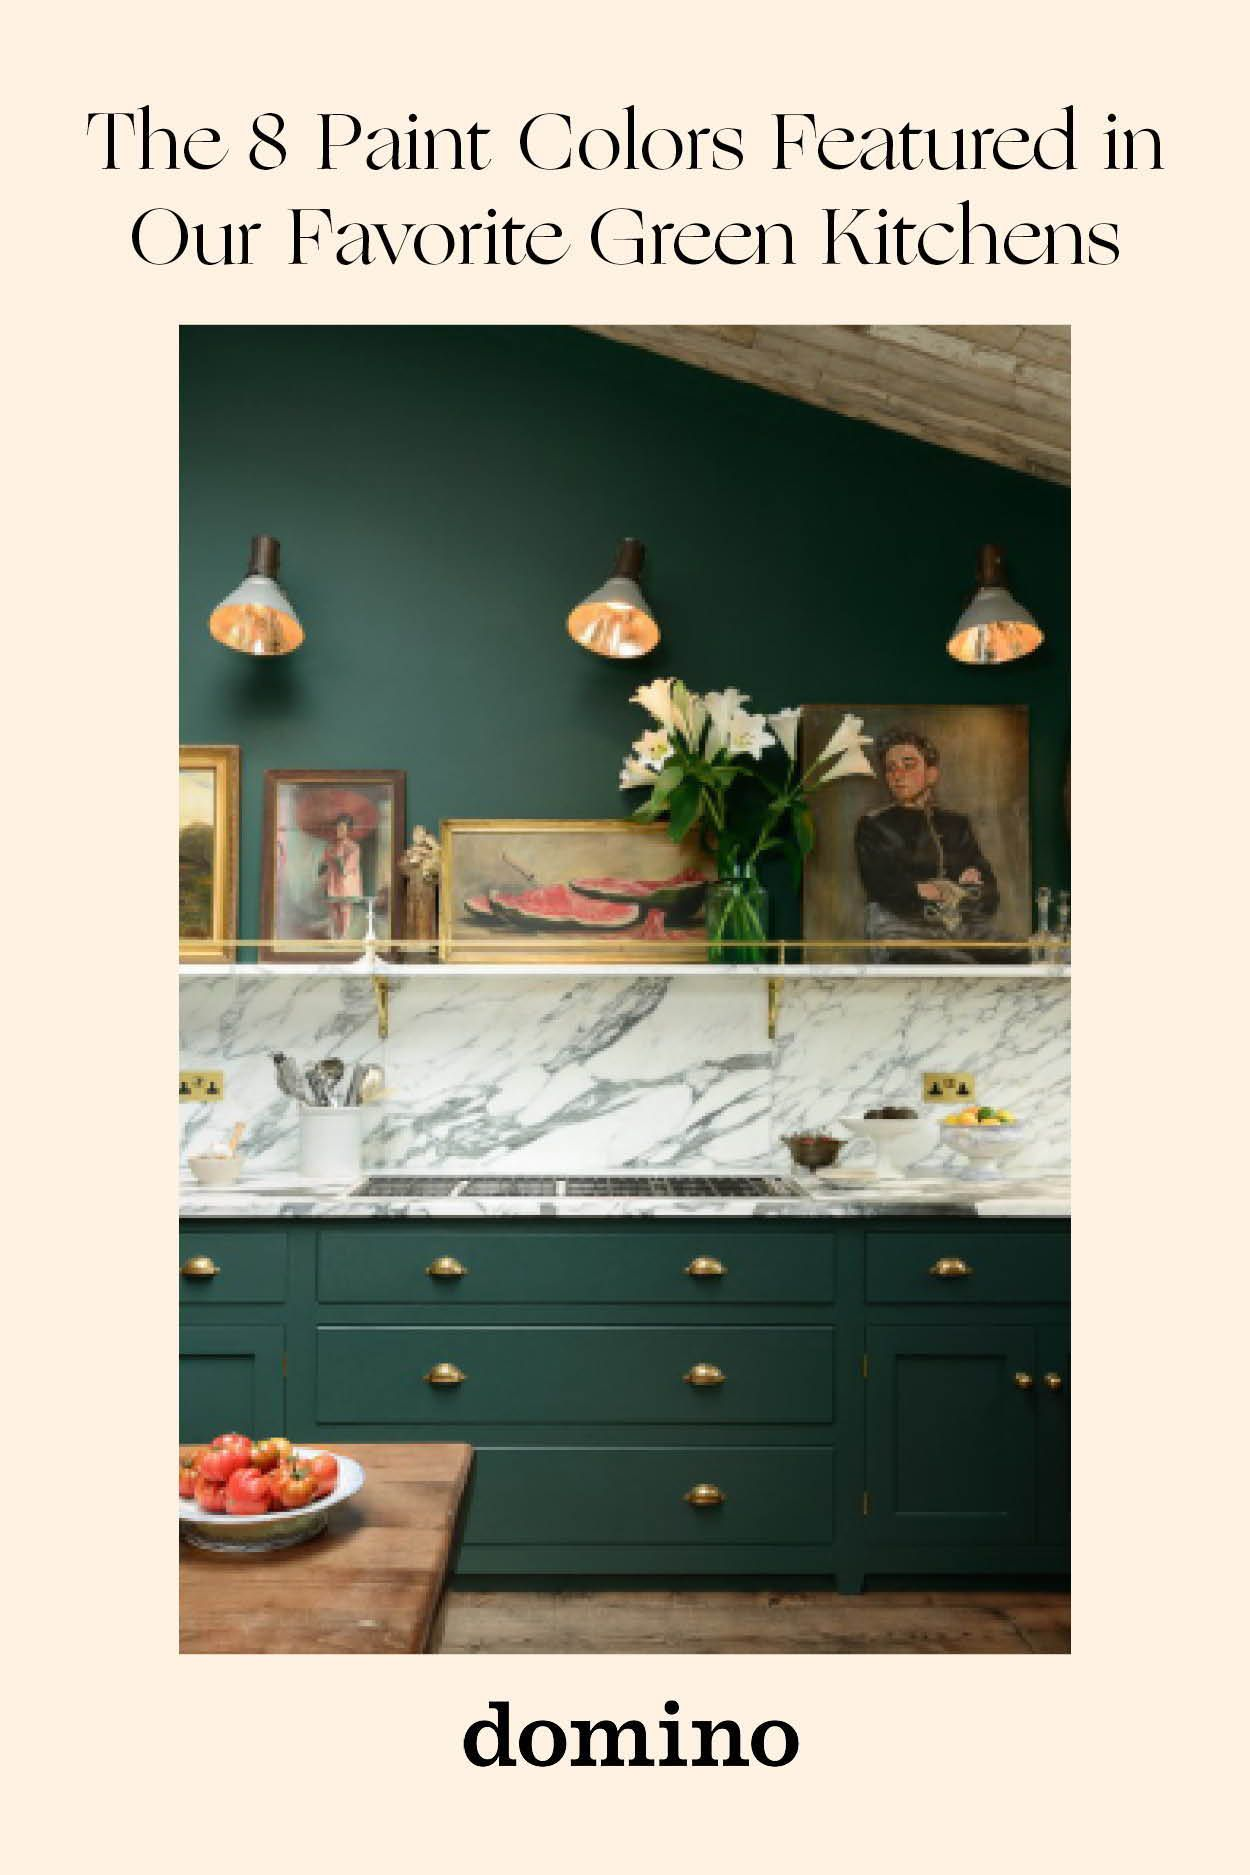 11 Green Kitchen Cabinet Paint Colors We Swear By Green Kitchen Devol Kitchens Painted Kitchen Cabinets Colors Green kitchen paint colors